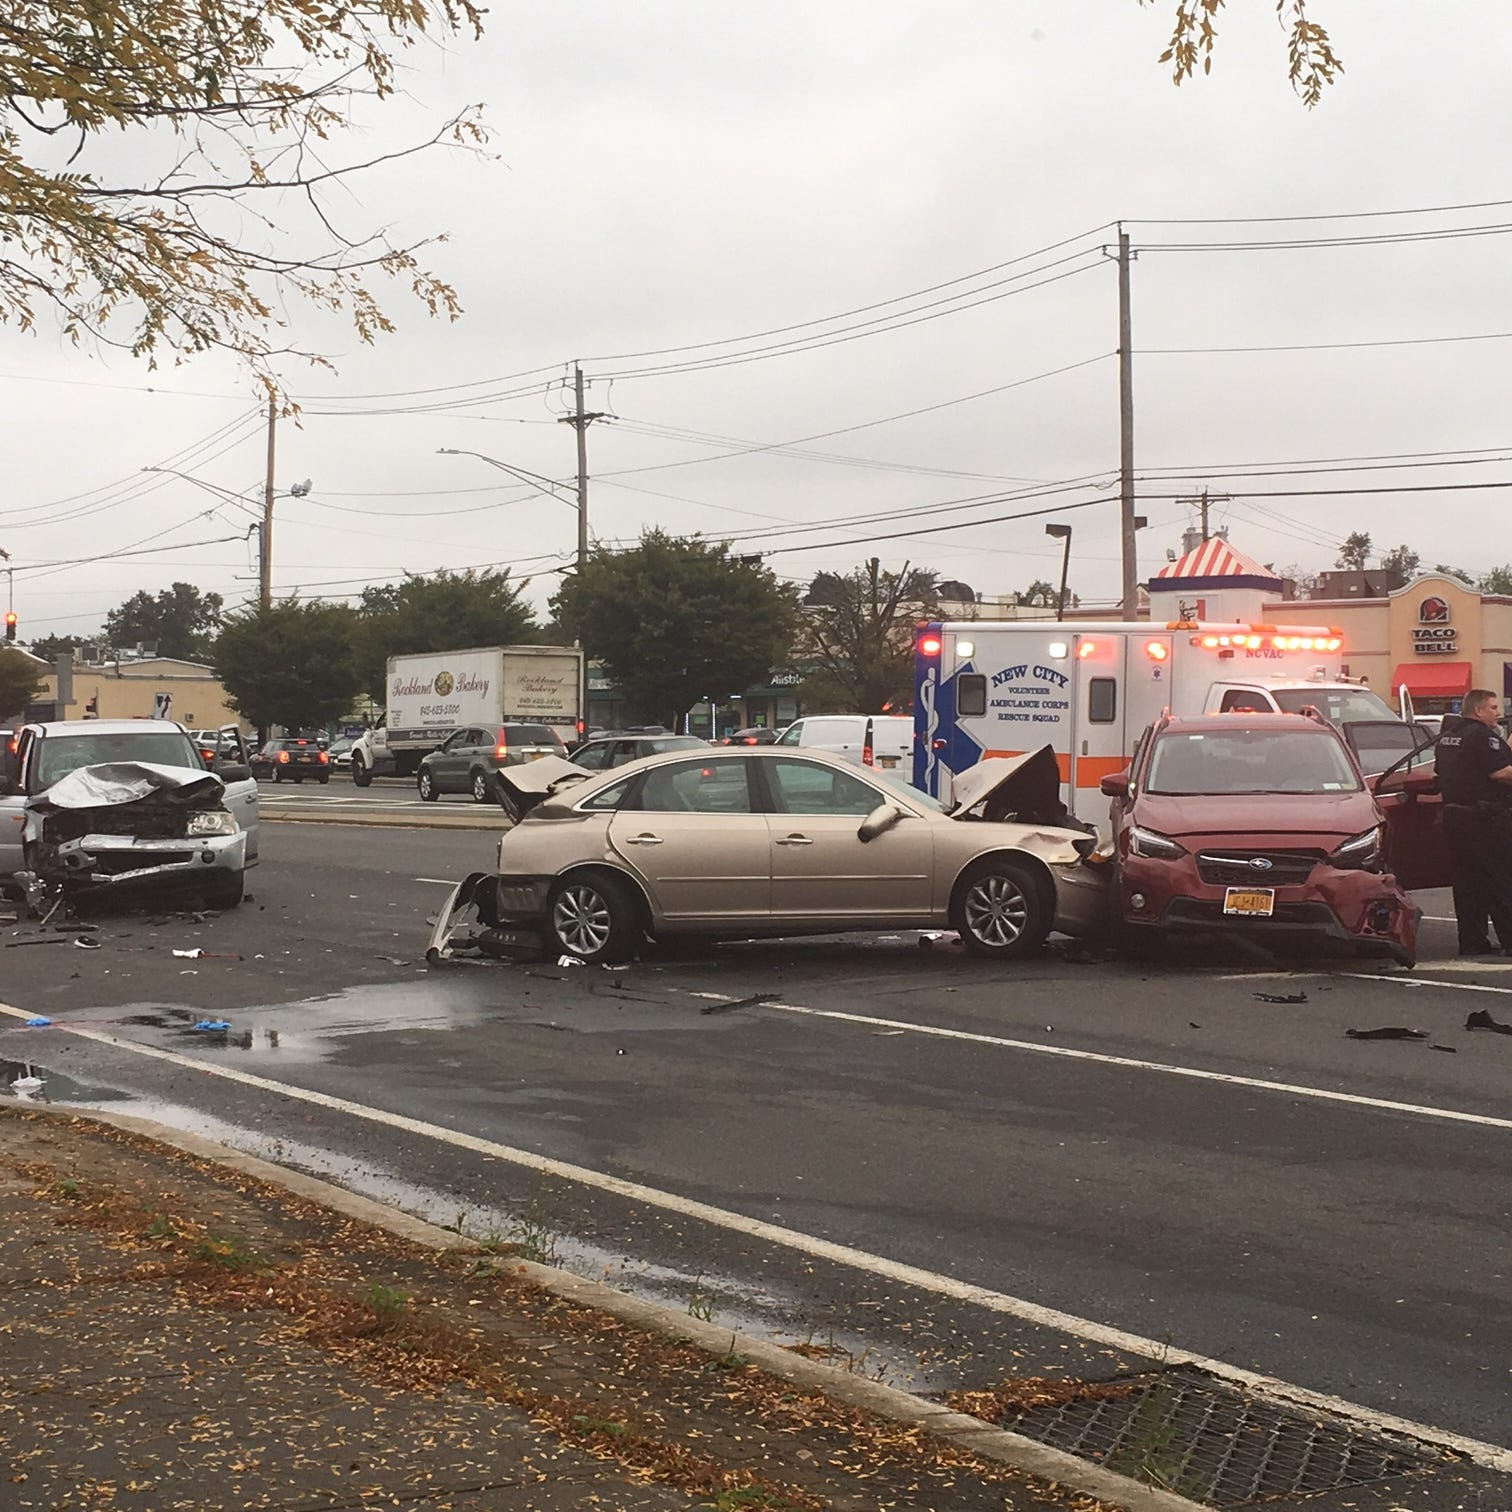 Clarkstown: Route 59 eastbound closed due to crash